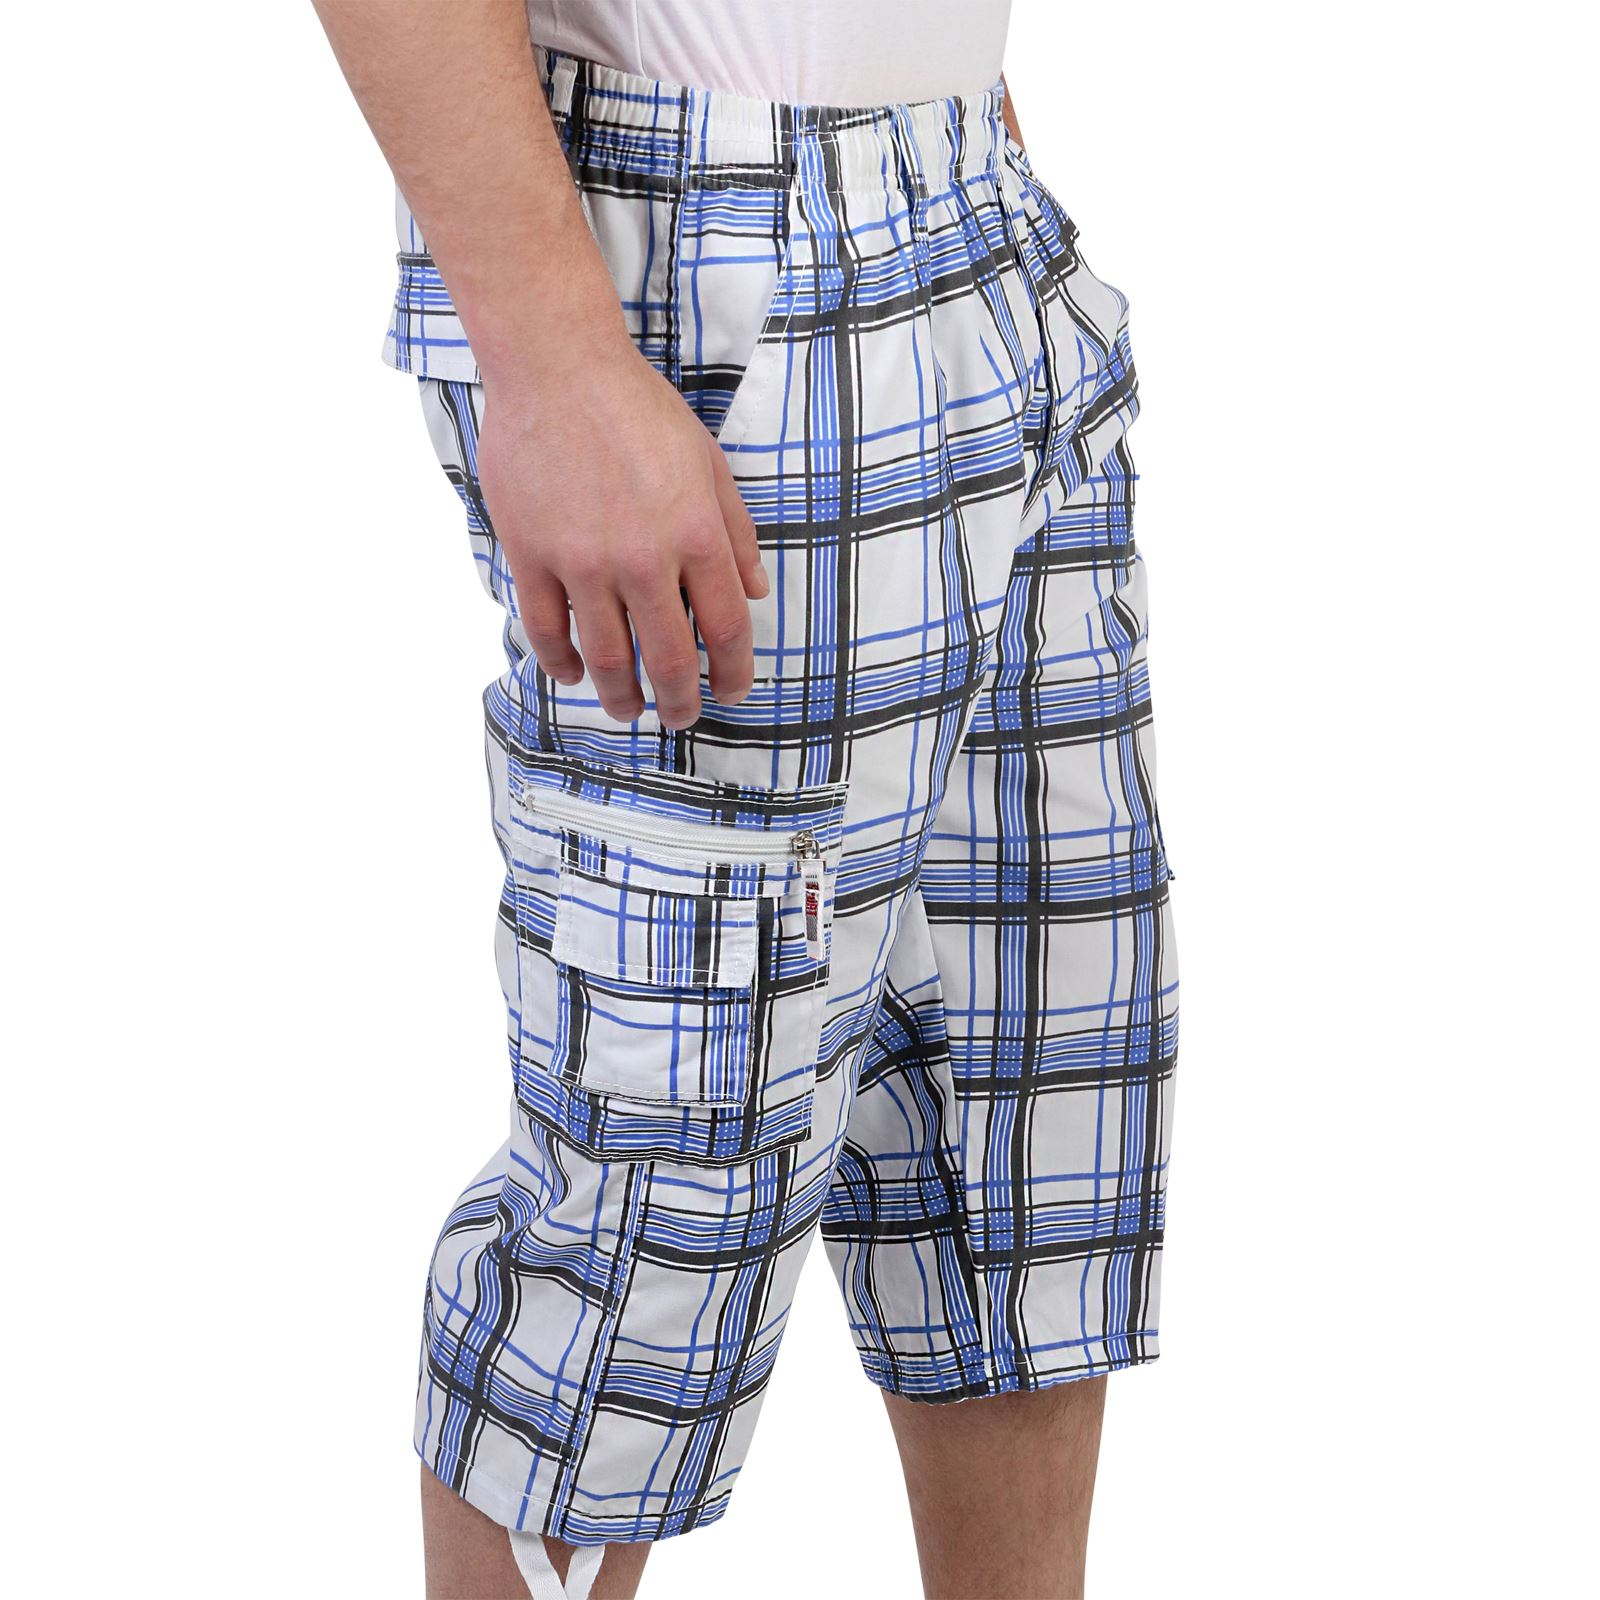 herren knielange karo bermuda cargo shorts kurze hose kariert baumwolle sommer ebay. Black Bedroom Furniture Sets. Home Design Ideas